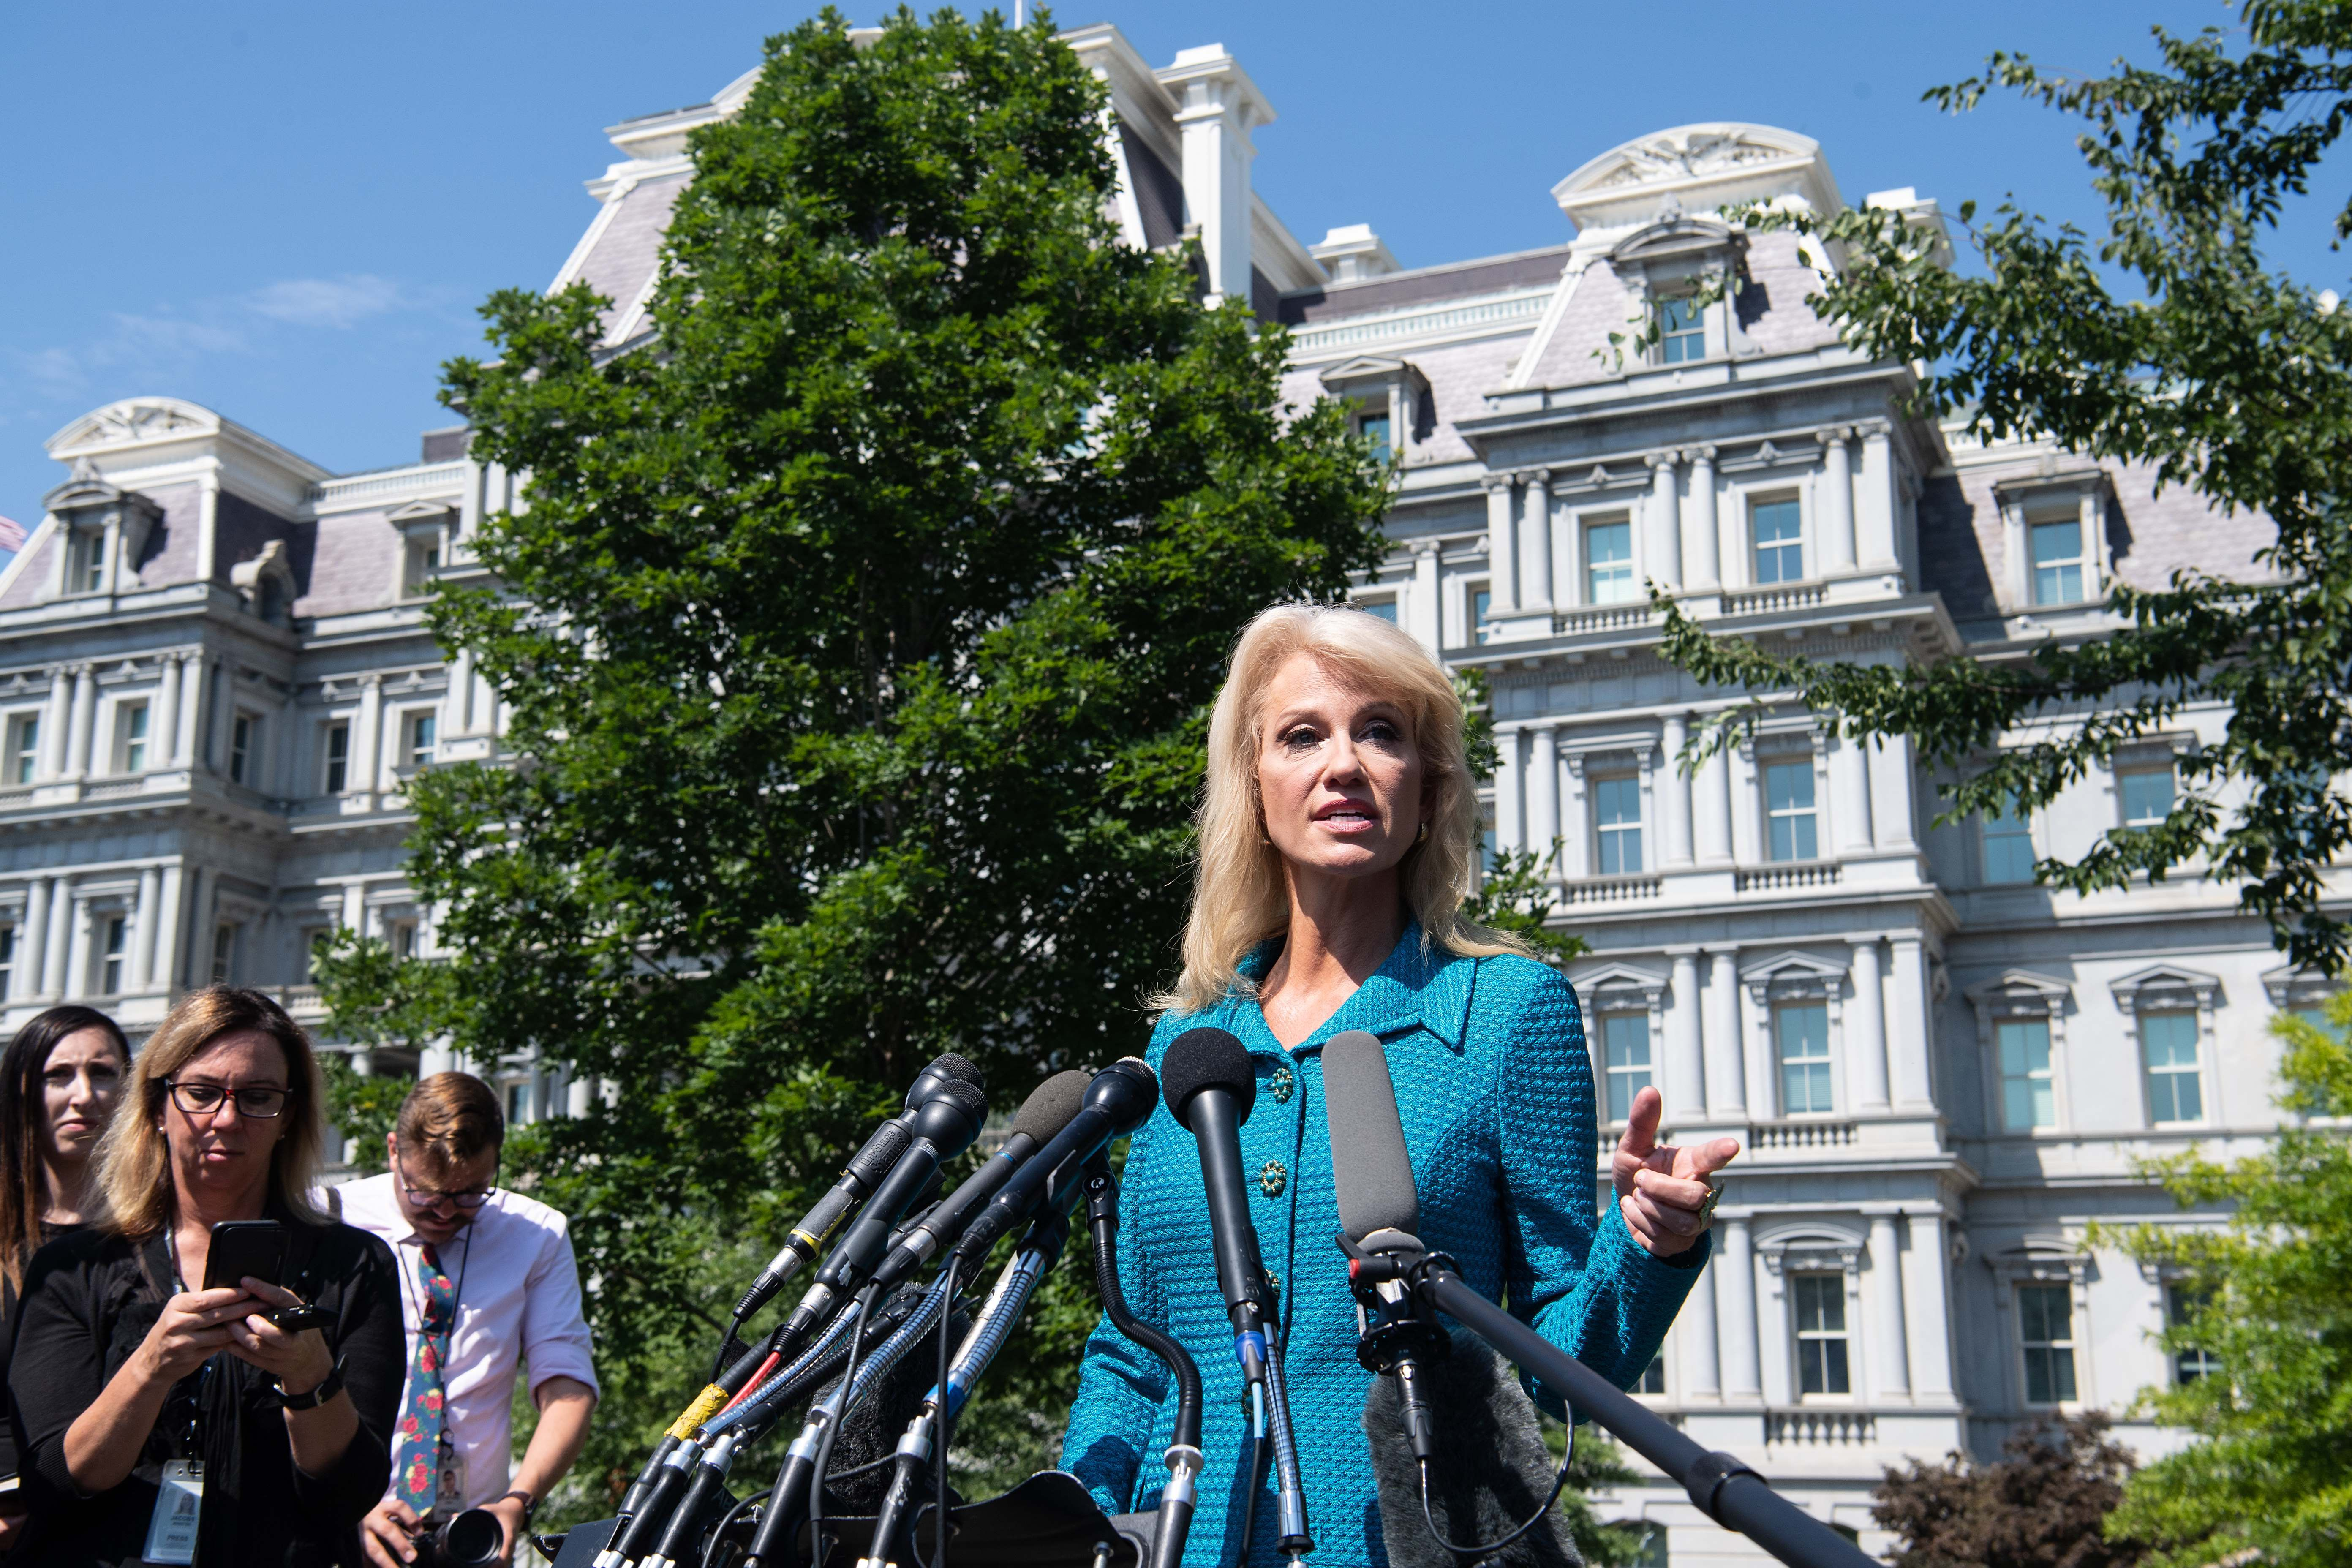 Kellyanne Conway clashes with CNN's Amanpour over Trump's rhetoric - Axios